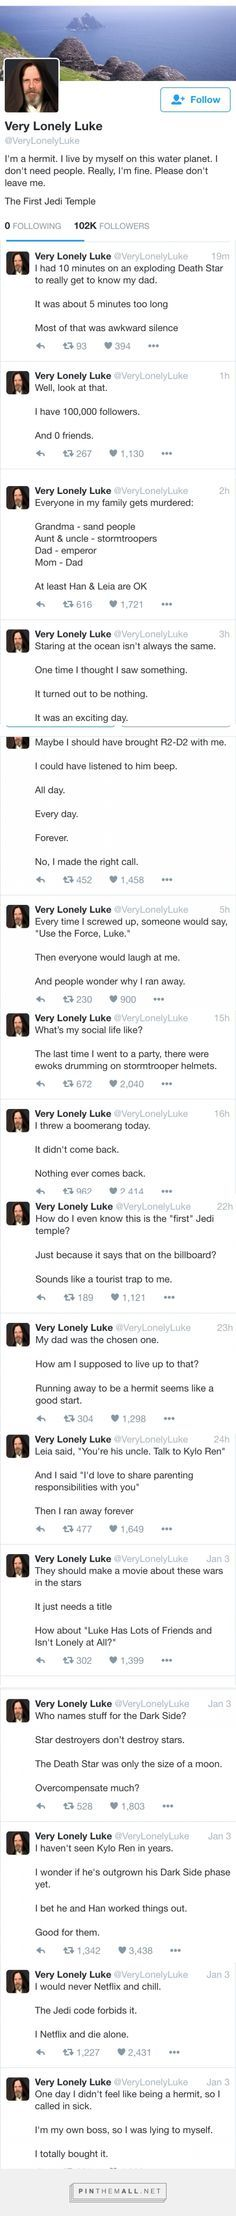 Very Lonely Luke. THIS IS TOO MUCH OMG I CANT STOP LAUGHING @bluestockingirl